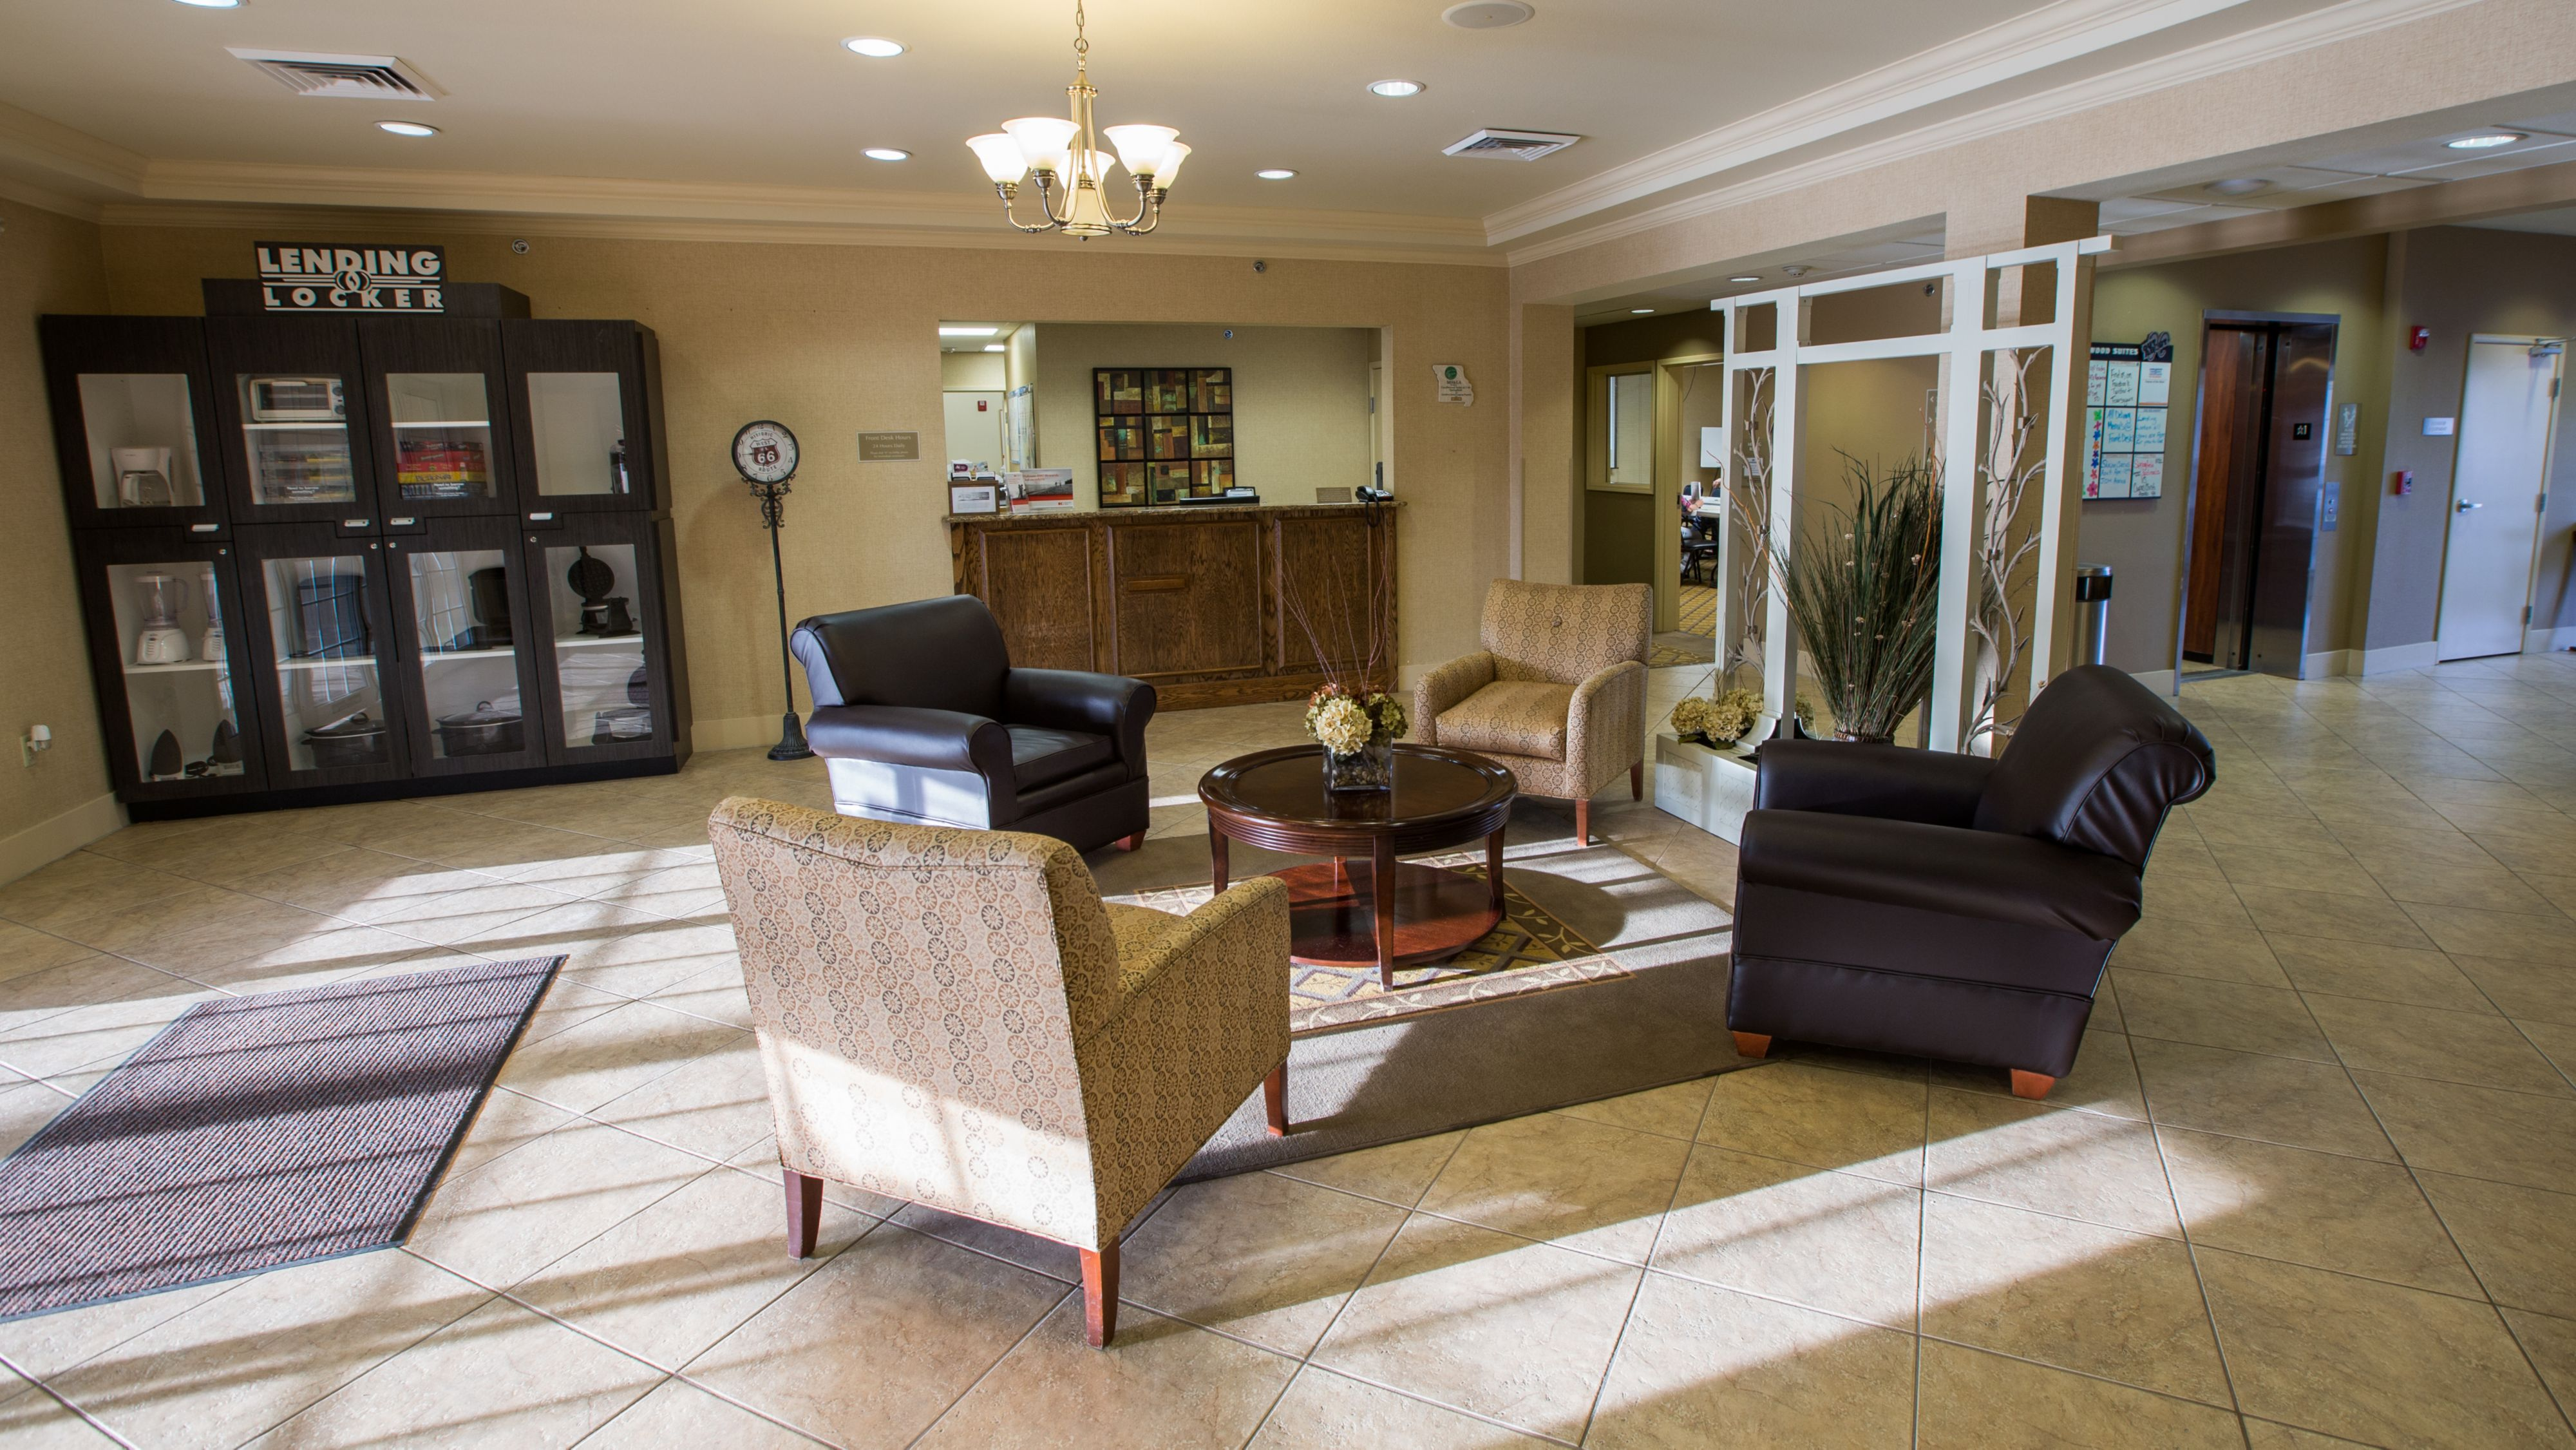 Candlewood Suites Springfield image 9